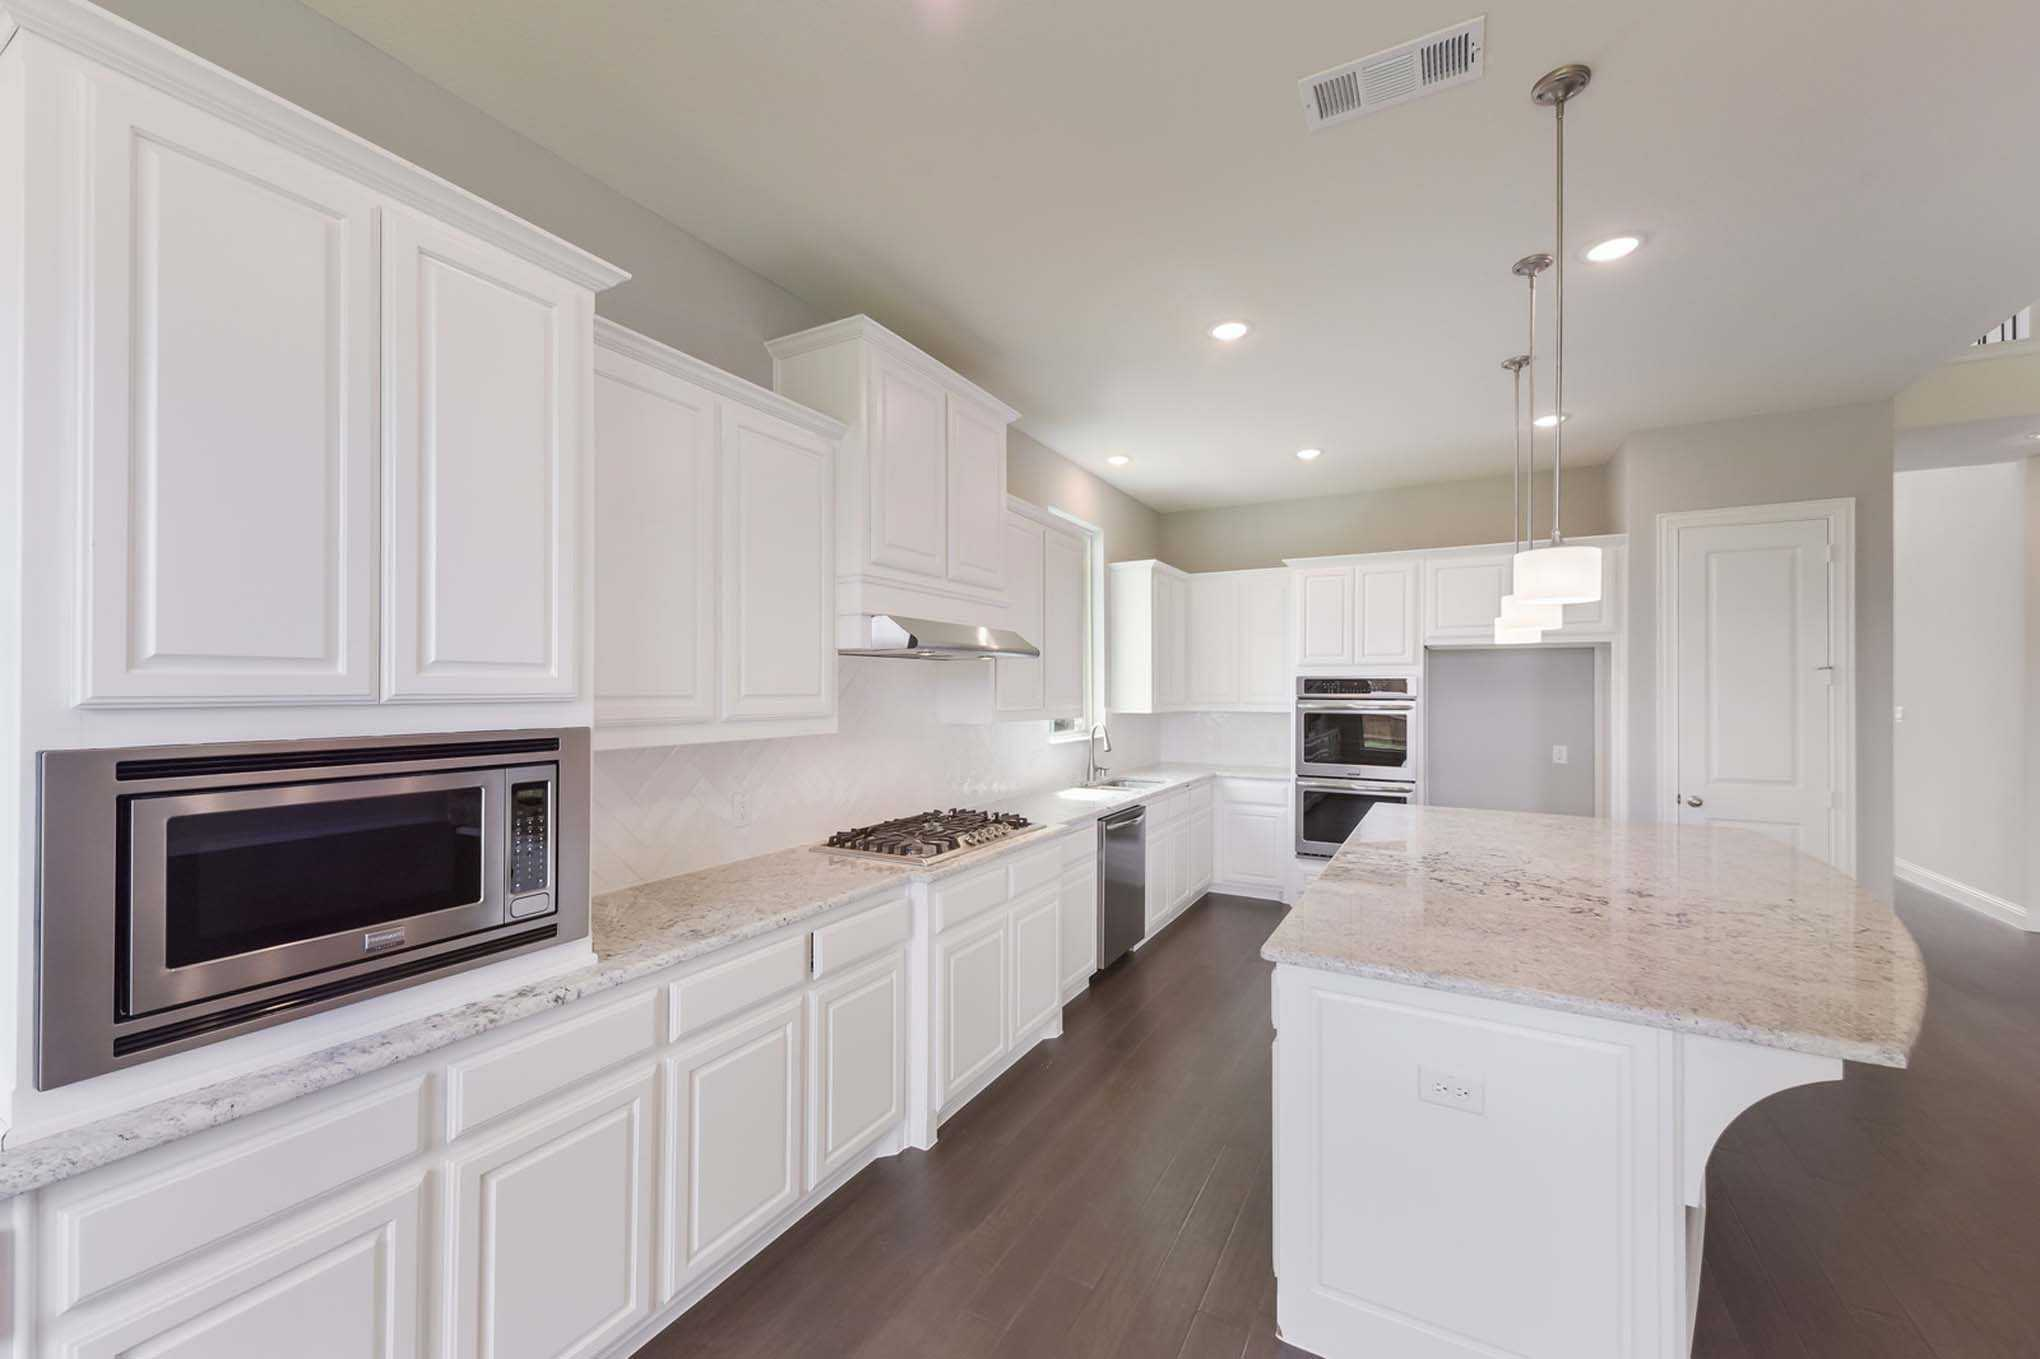 Kitchen featured in the Plan 277 By Highland Homes in Houston, TX